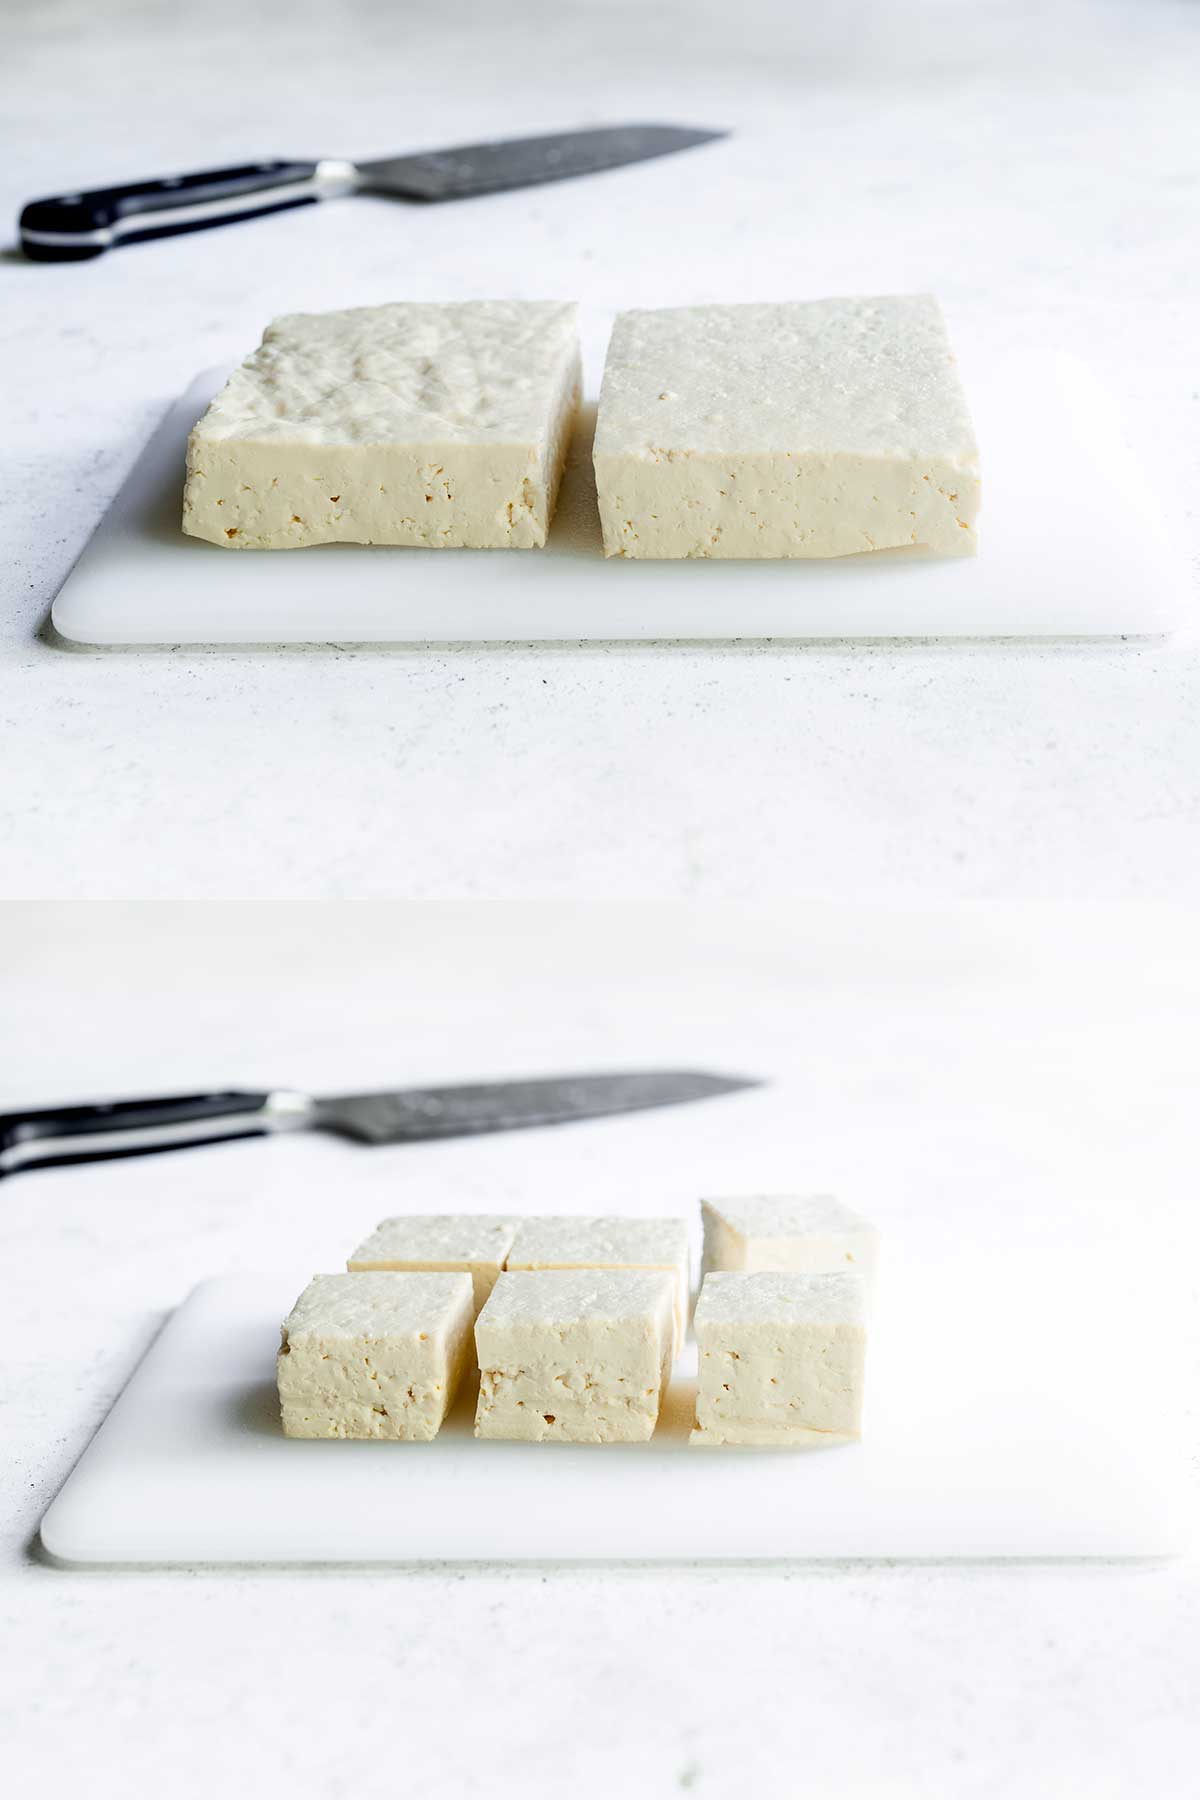 A collage image demonstrating firm tofu being sliced into cubes